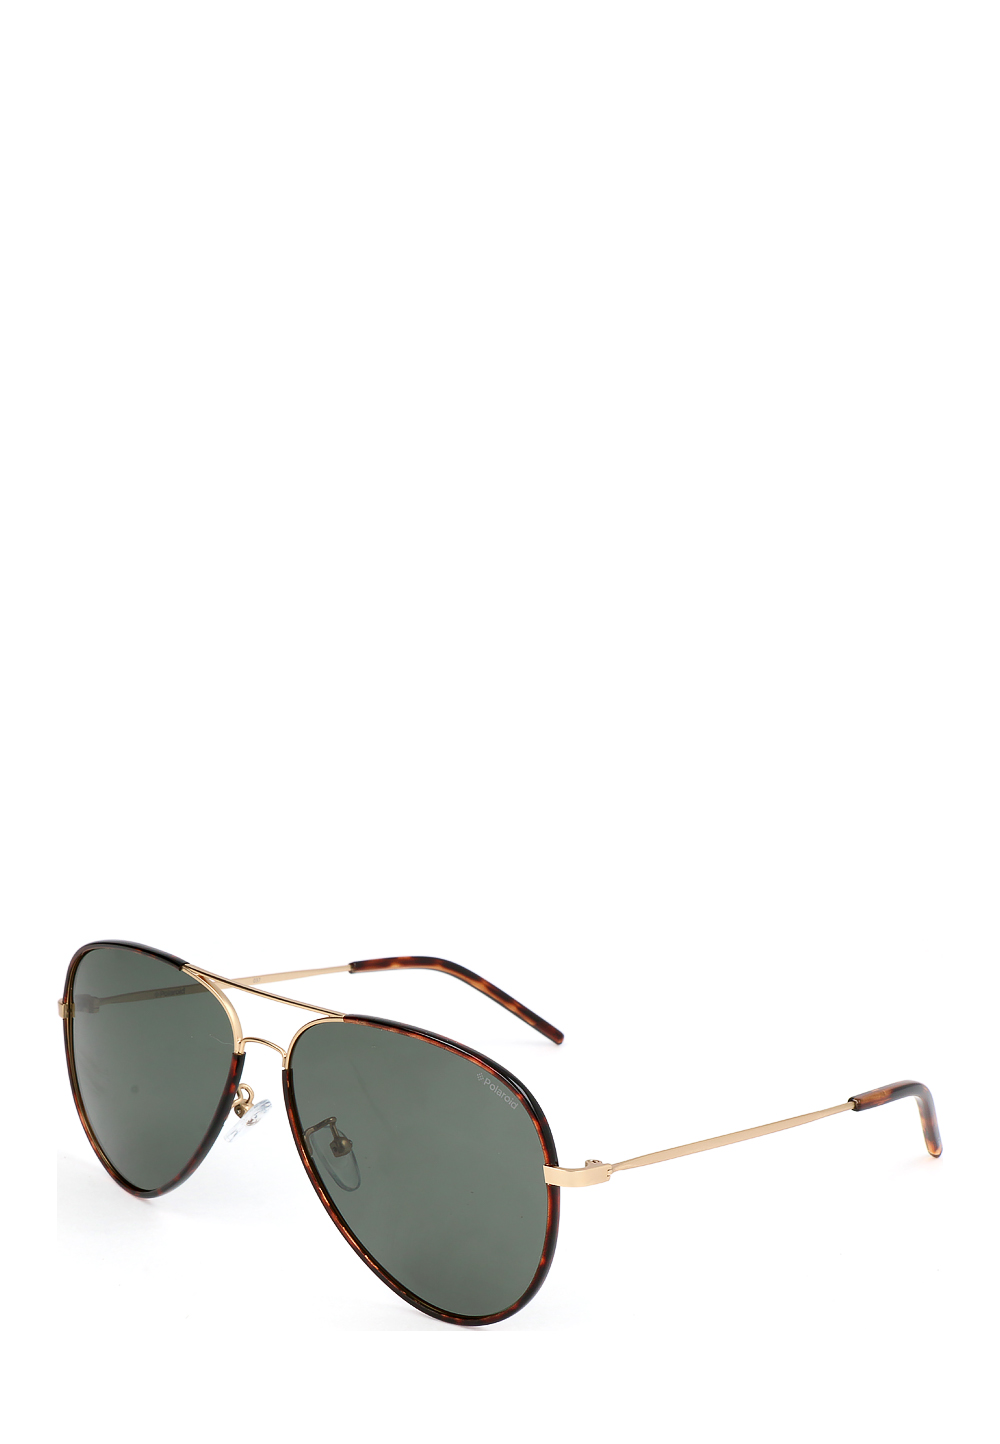 Sonnenbrille Pld1020/F/S, polarized, Uv400, gold